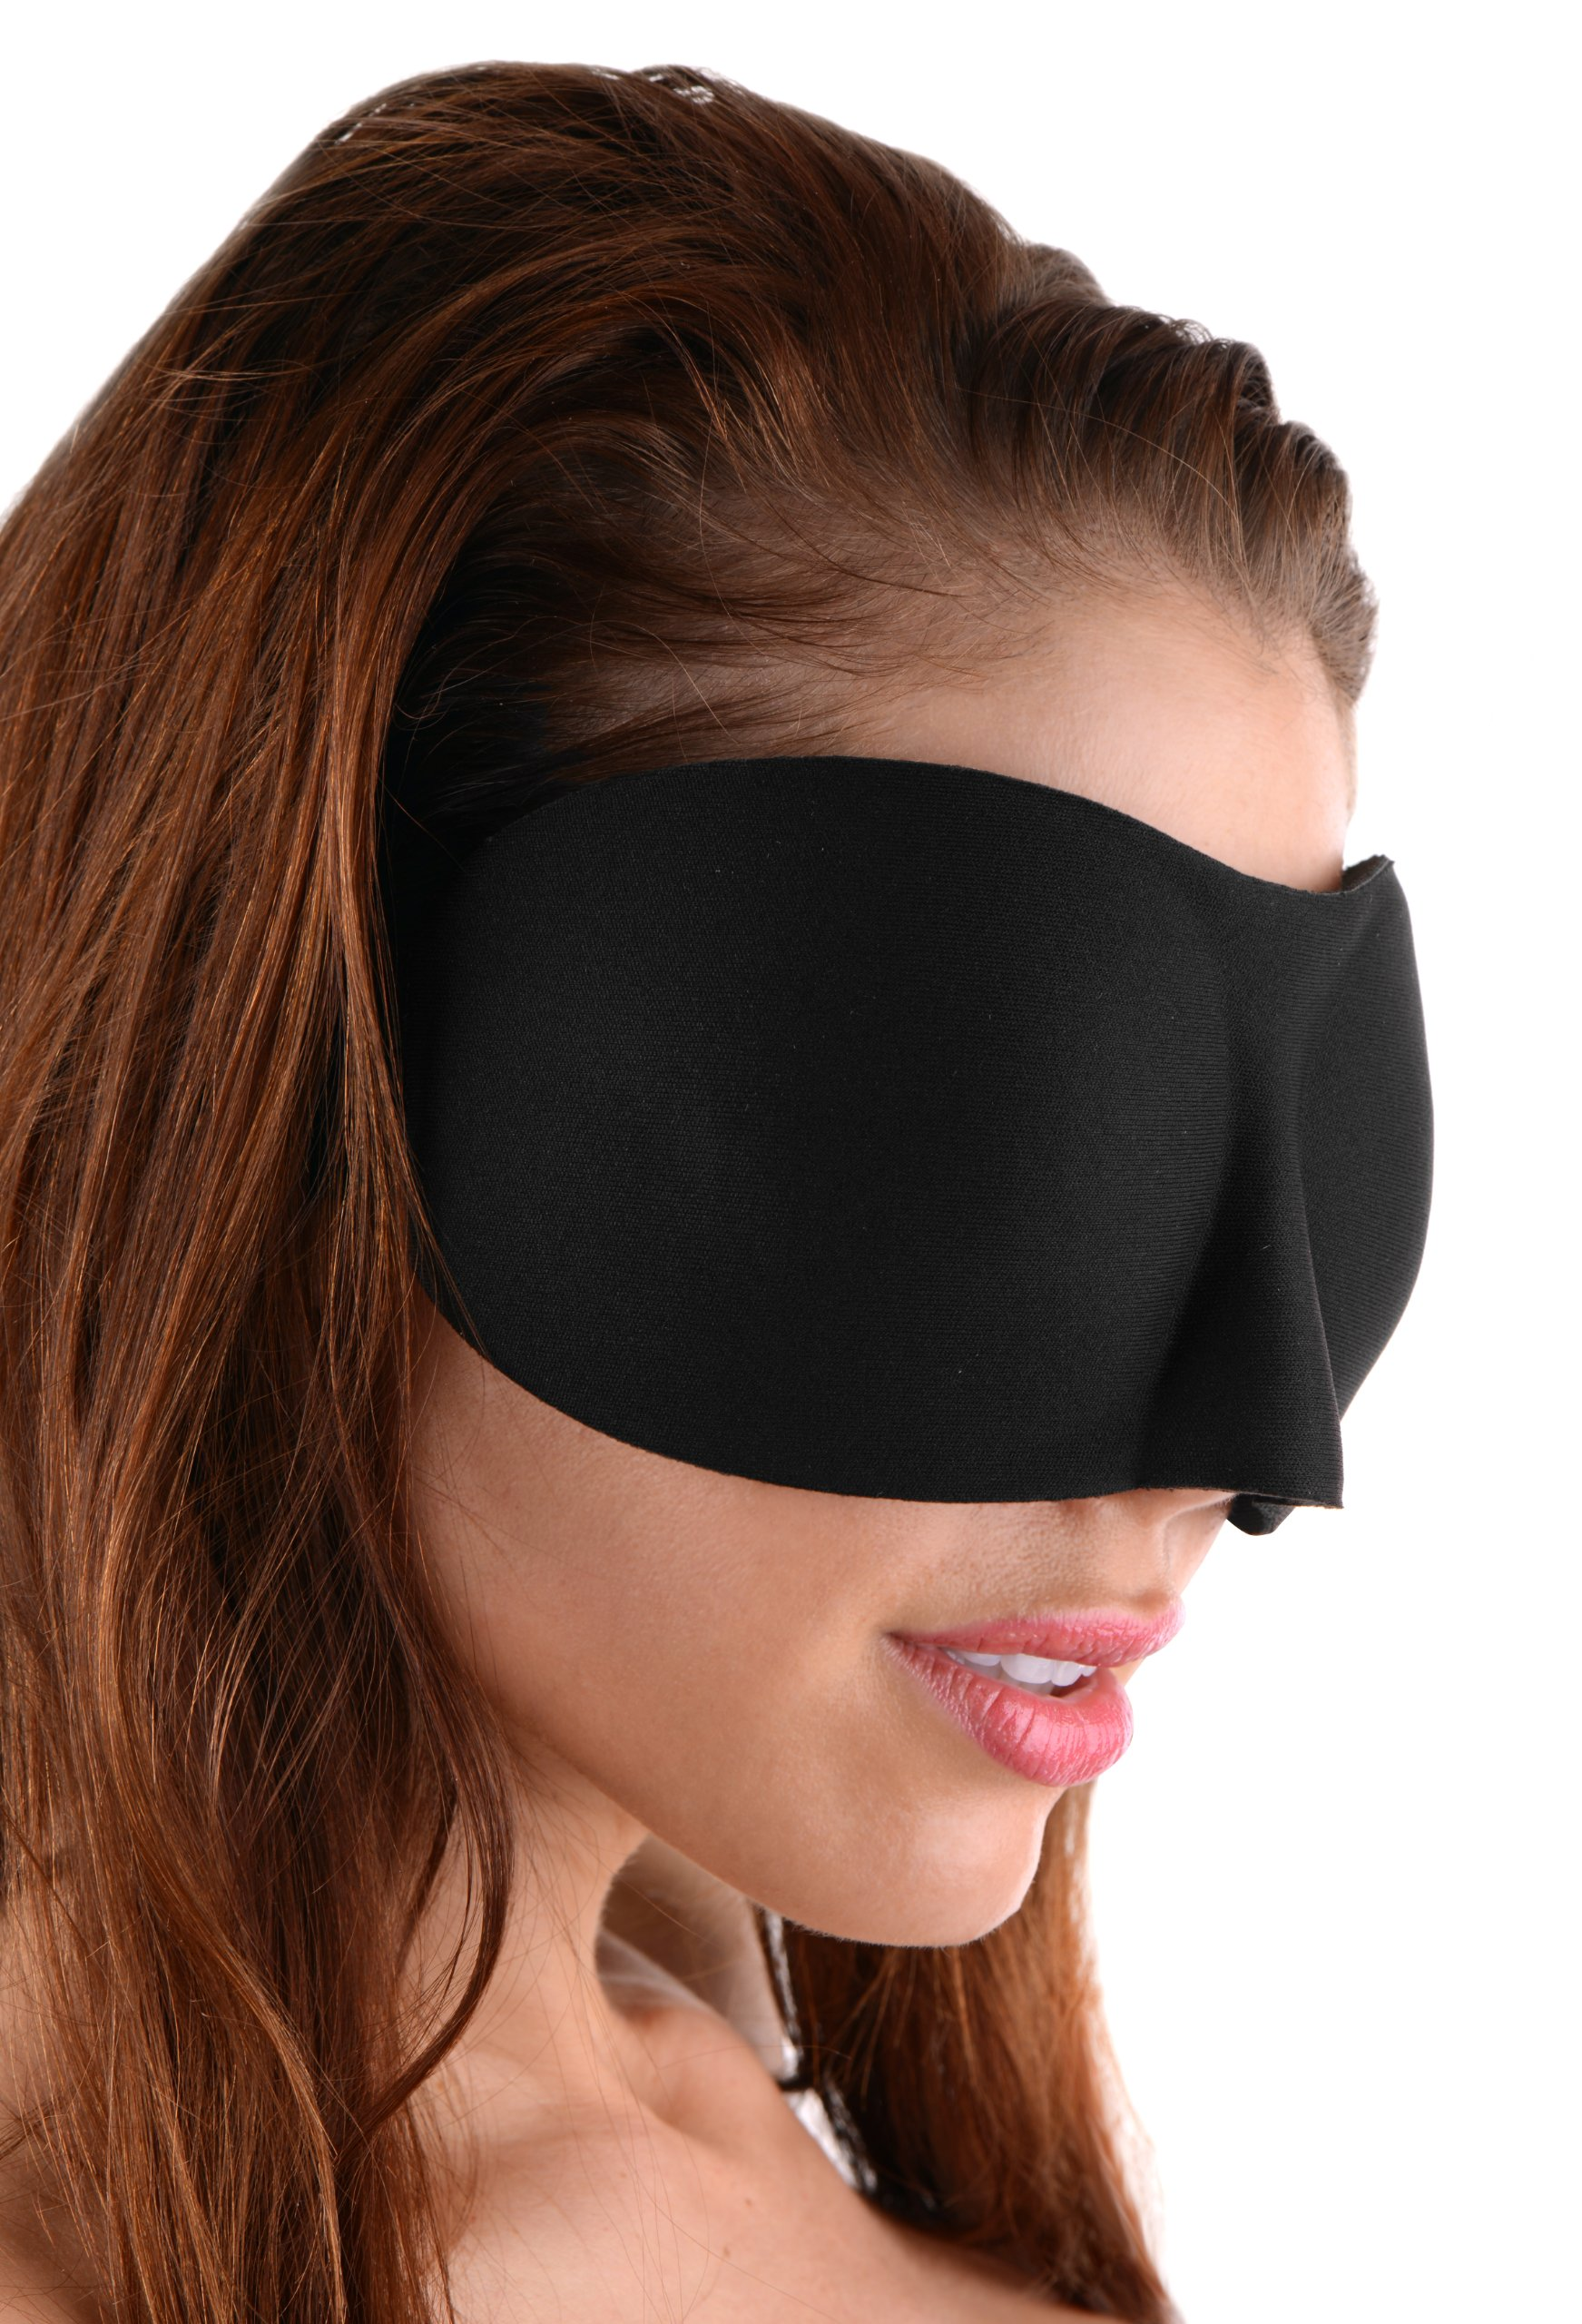 Frisky AD310 Deluxe Black Out Blindfold Sleep Mask